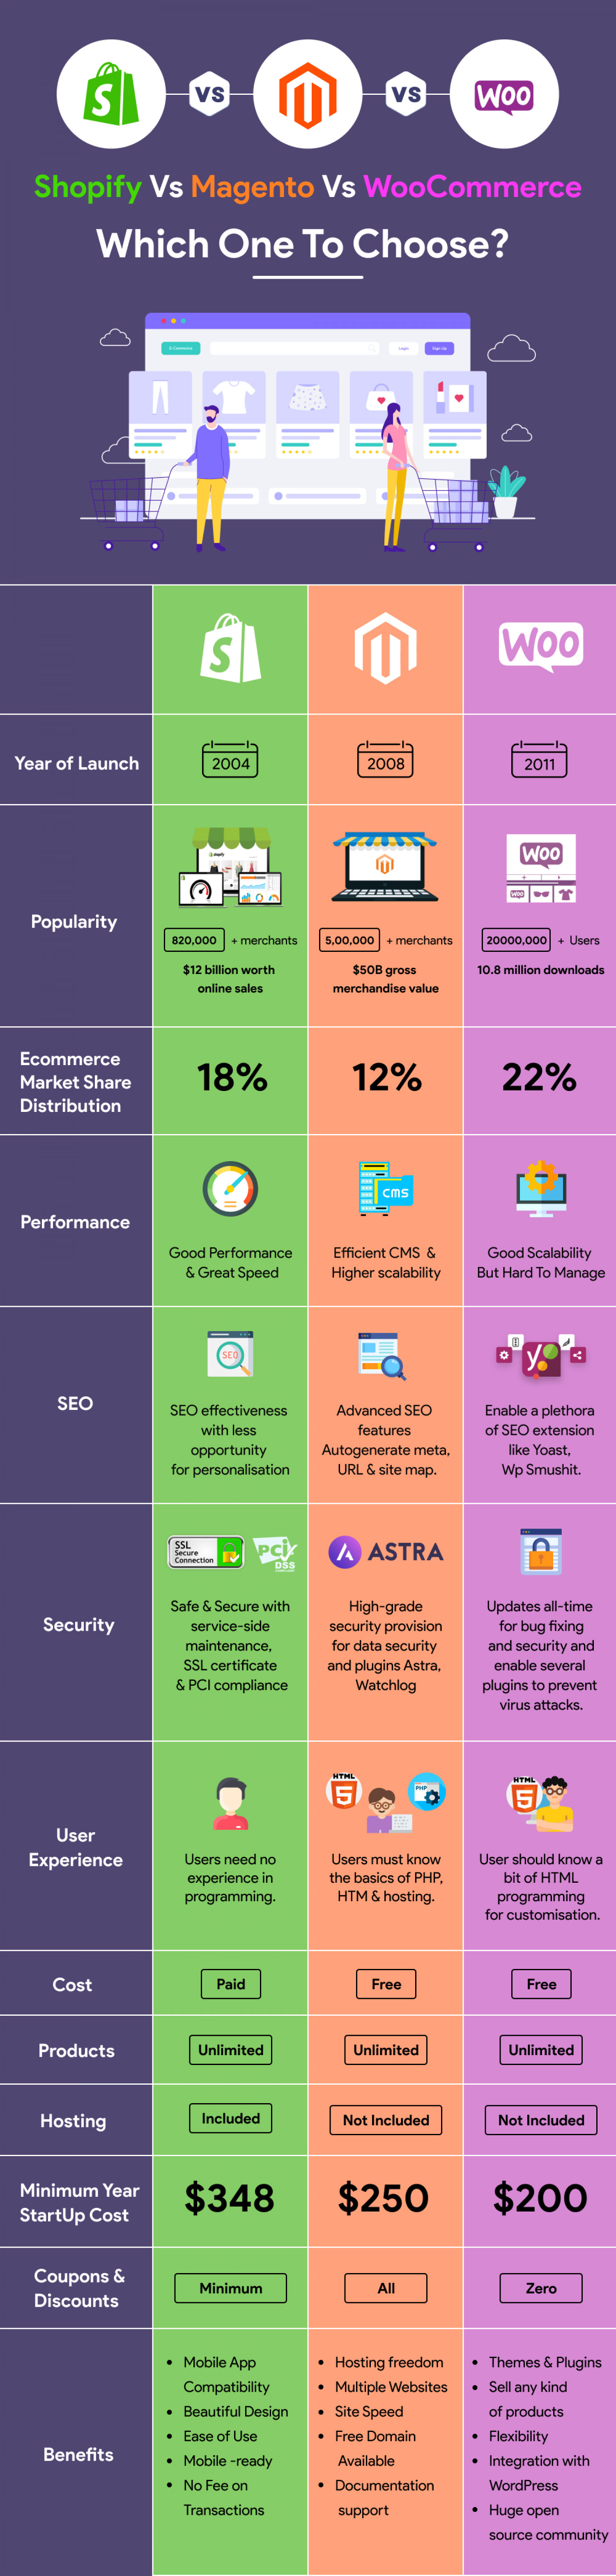 Shopify vs. Magento vs. WooCommerce   Detailed Features Comparison Infographic